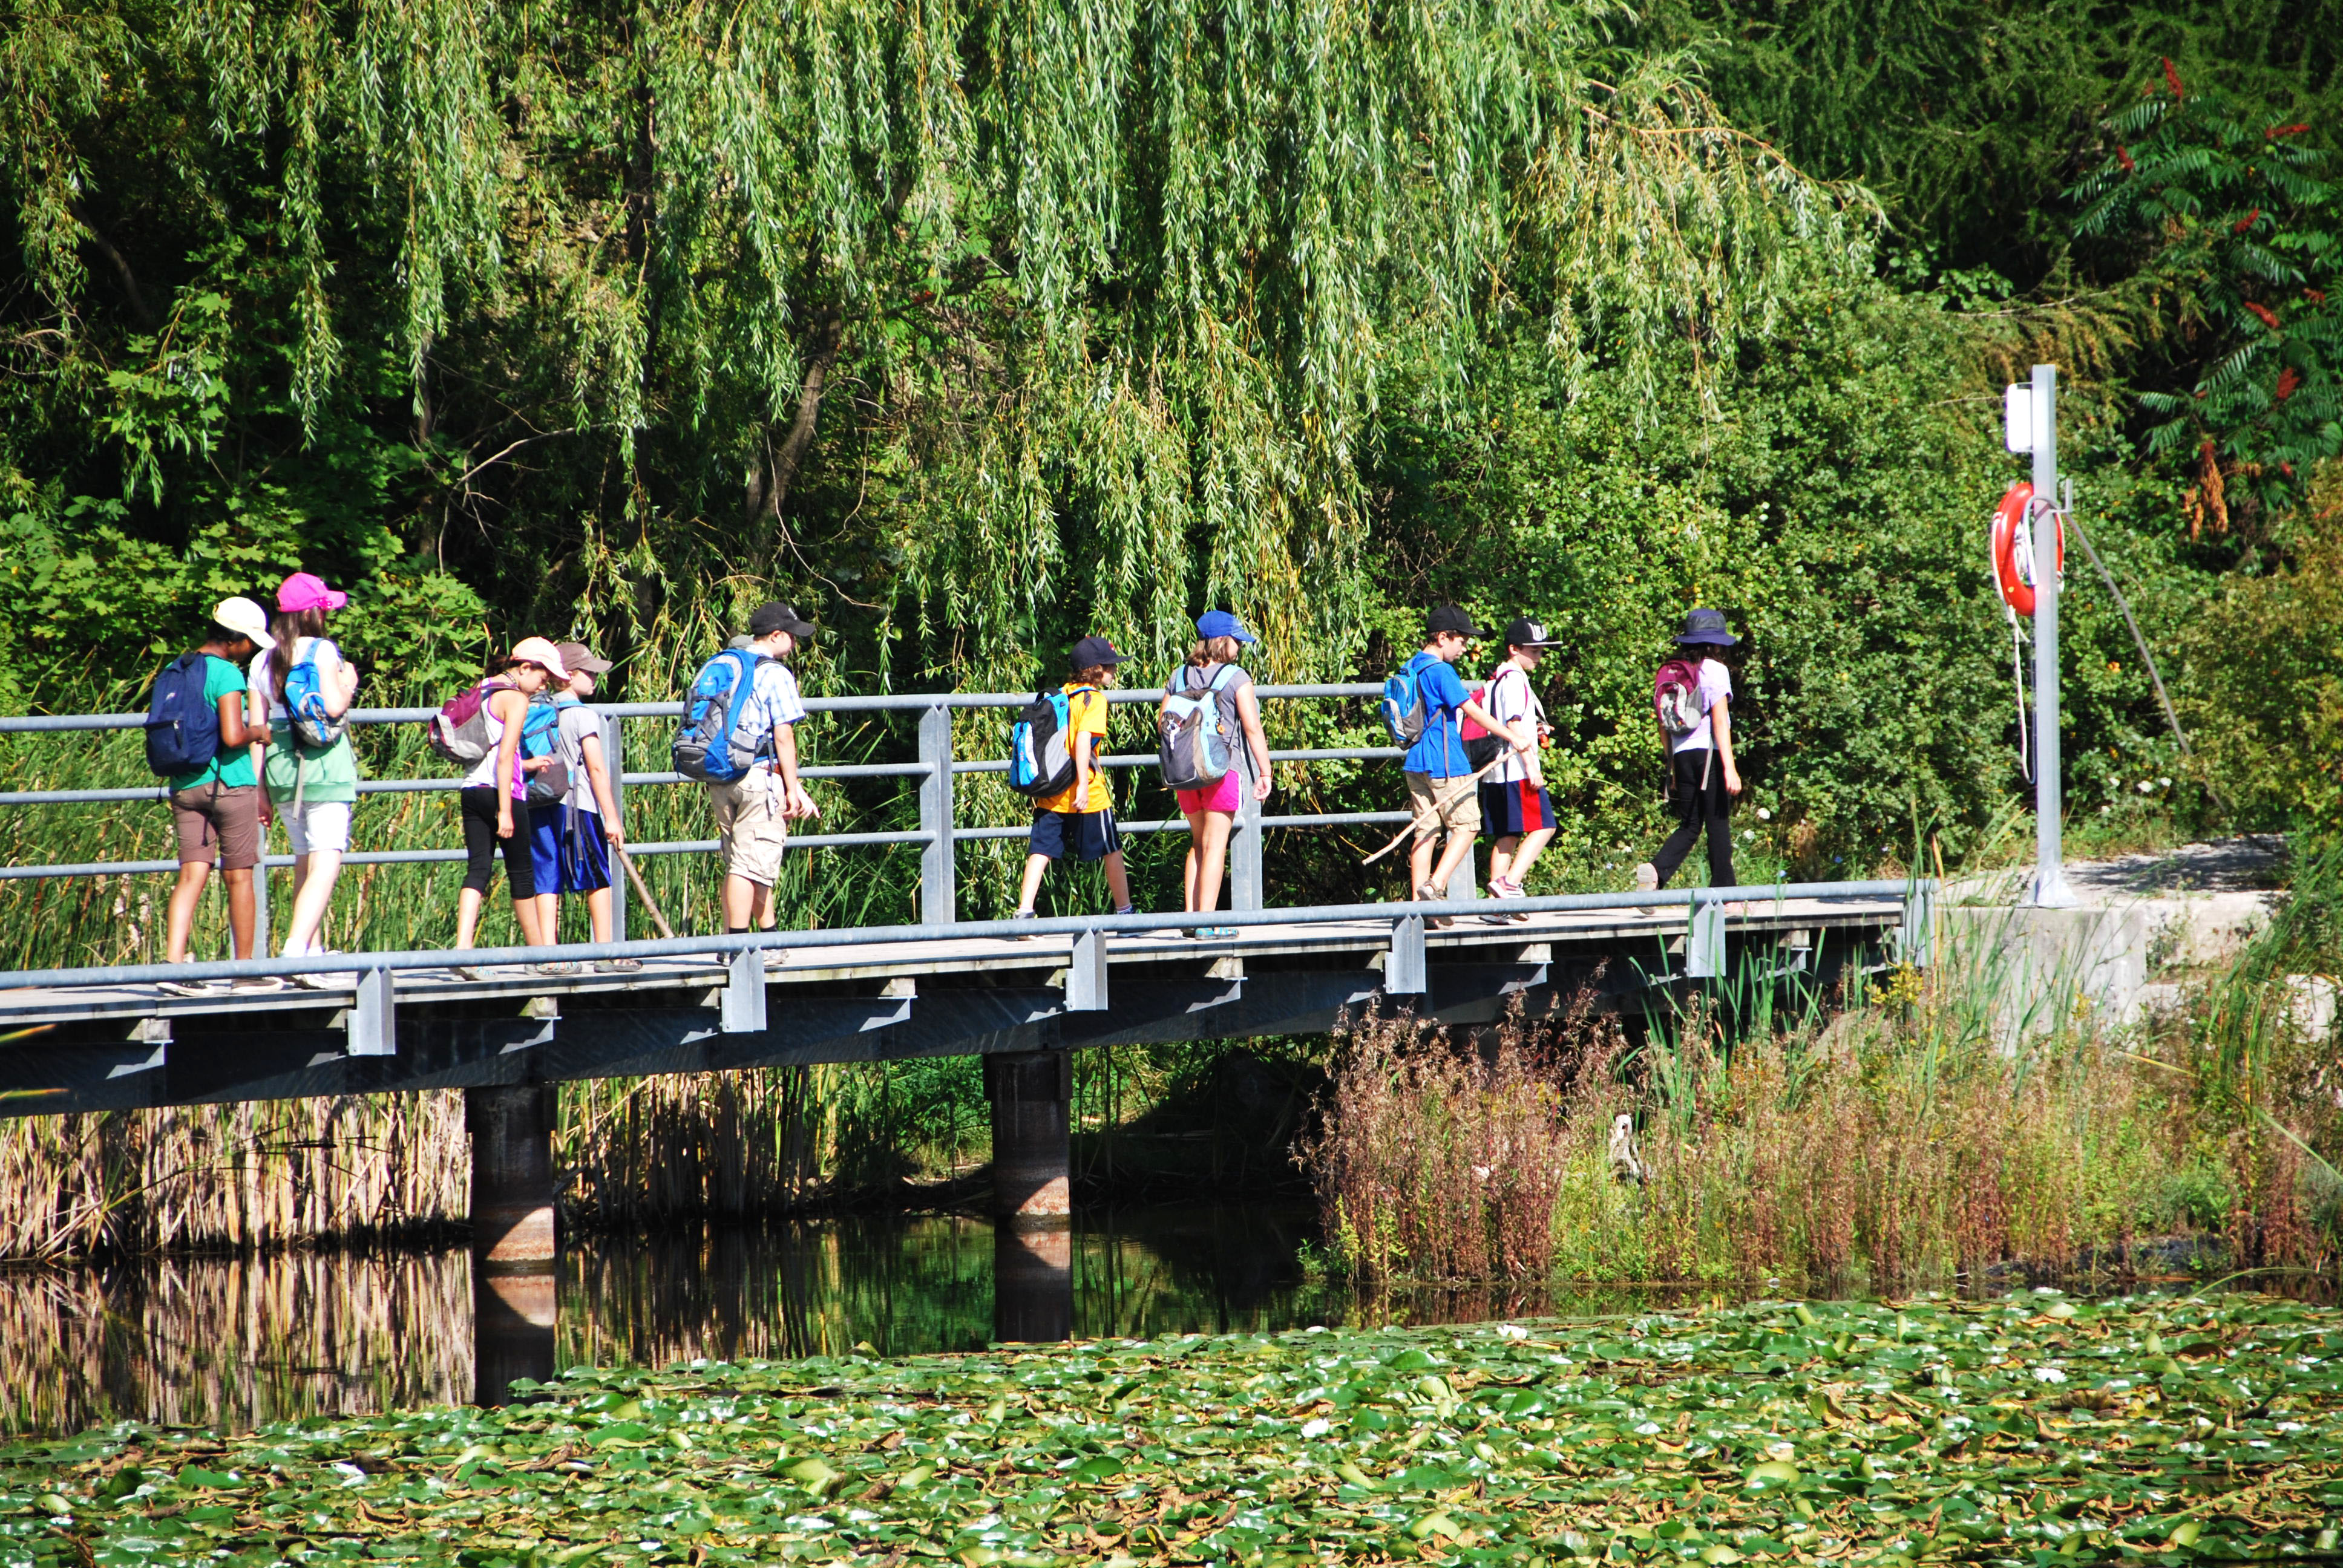 A group of students with backpacks walking on the boardwalk over a lily pad pond and willow trees.